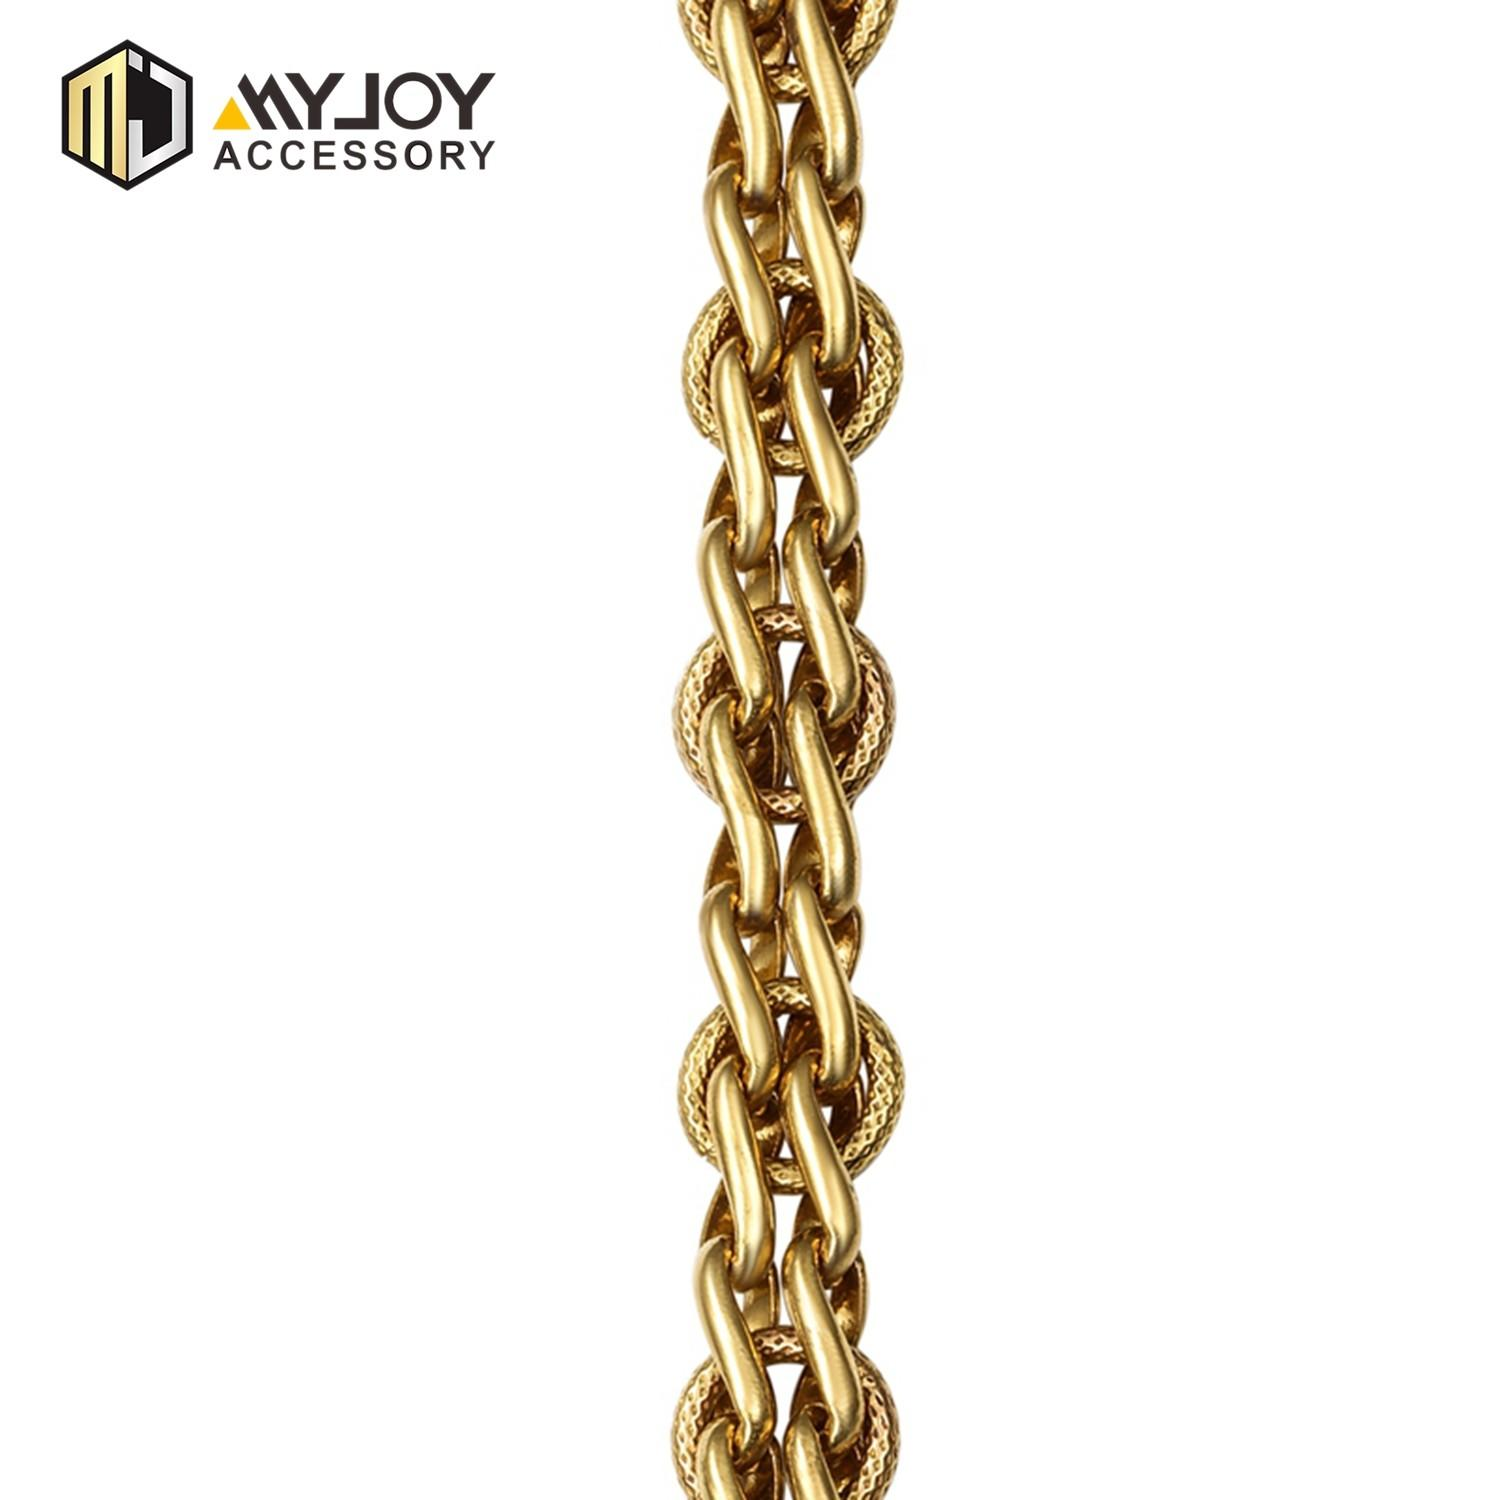 MYJOY zinc chain strap company for bags-1